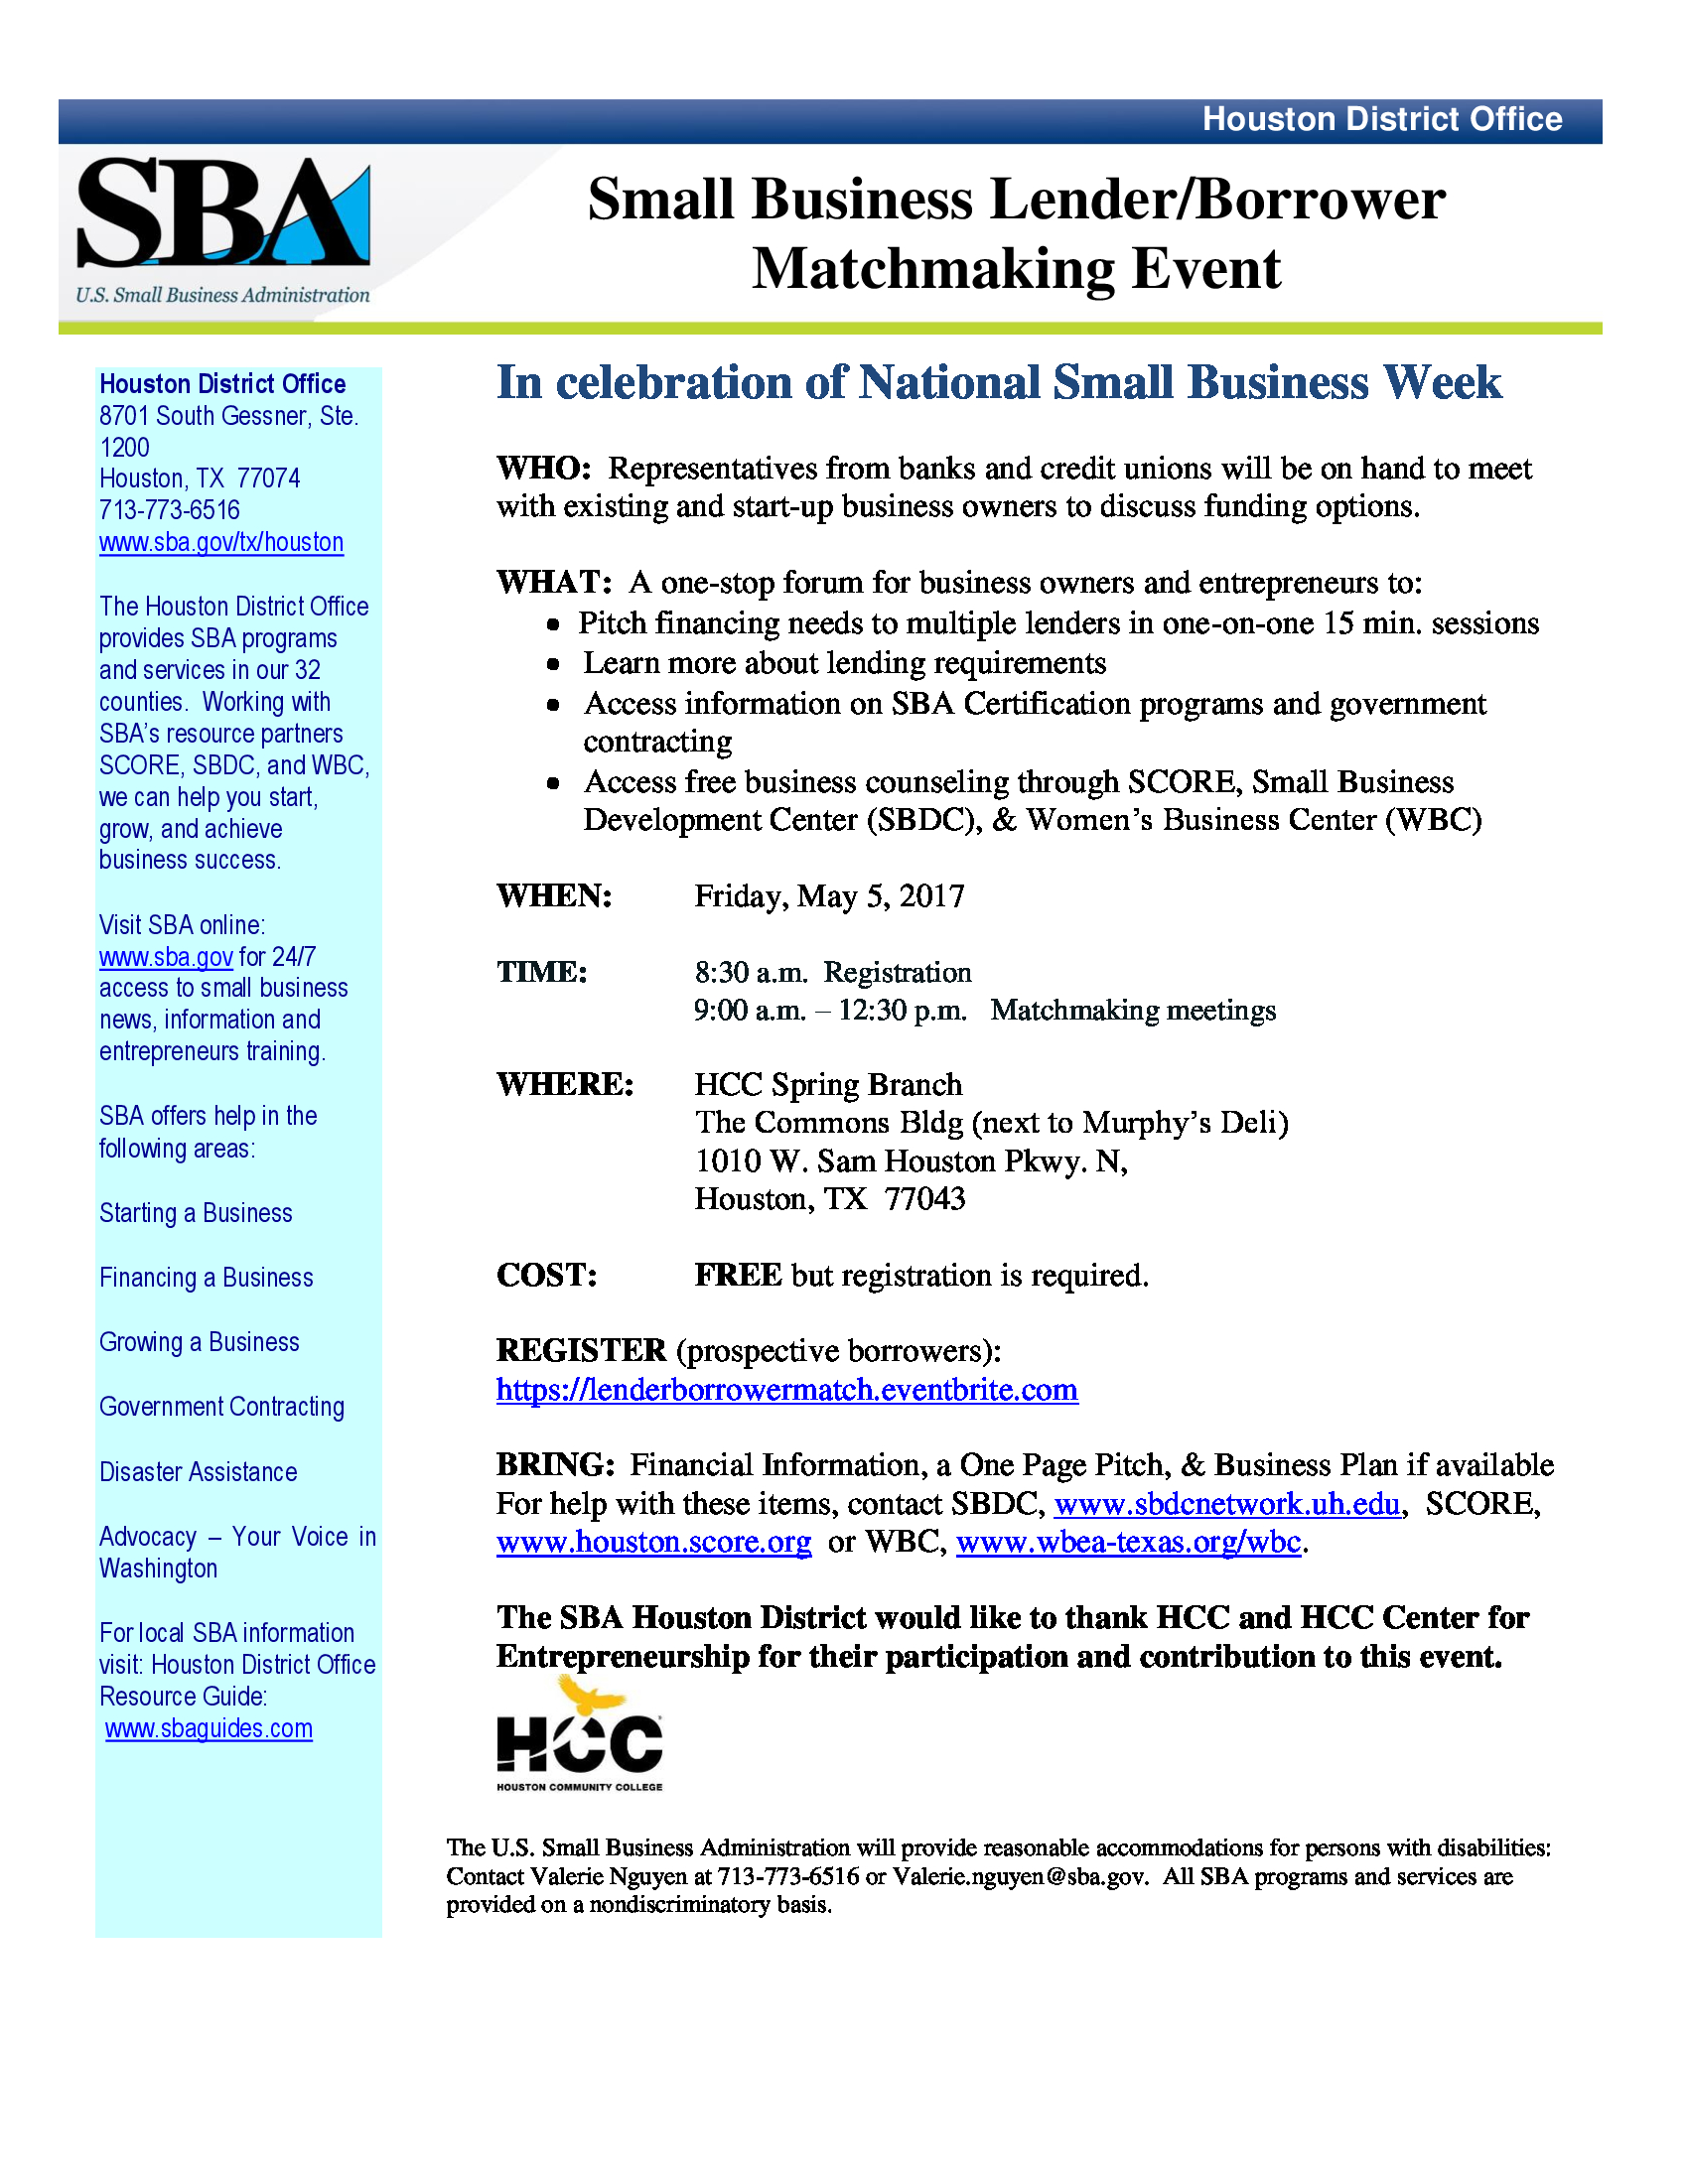 9th Annual Meet the Buyers A Procurement Matchmaking Event